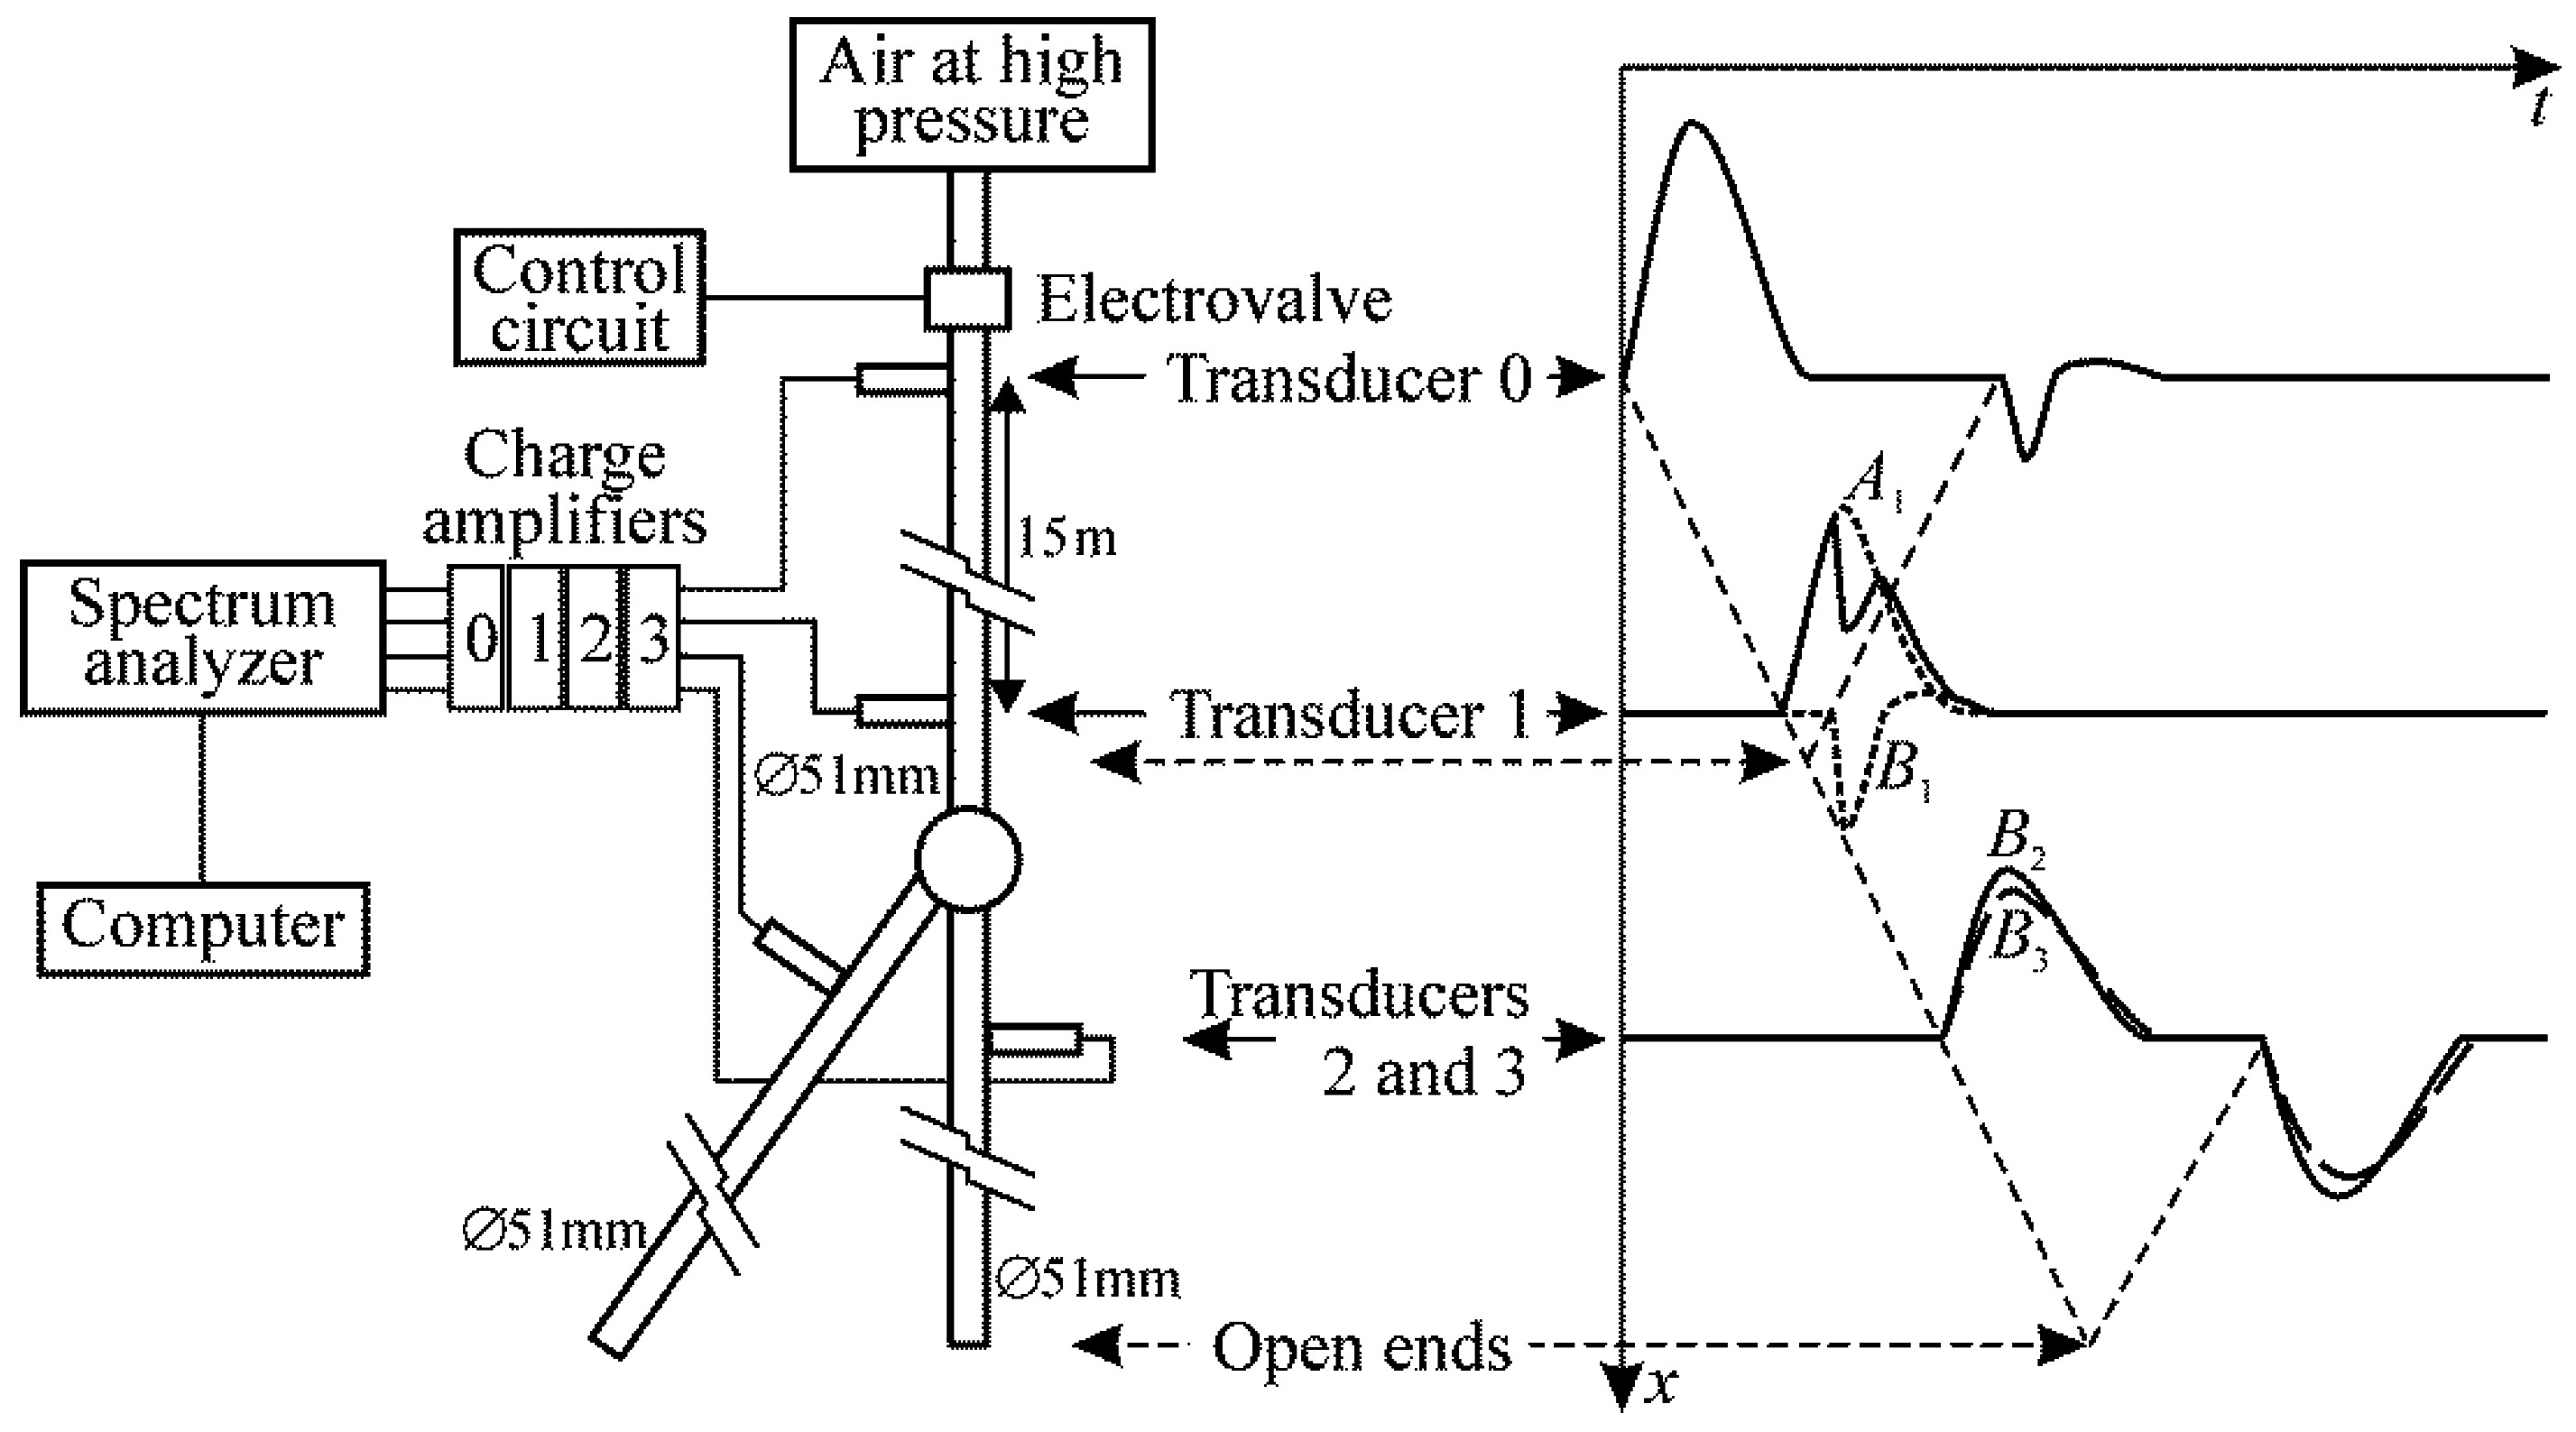 Combination Valve Diagram Applied Sciences Free Full Text Of Combination Valve Diagram